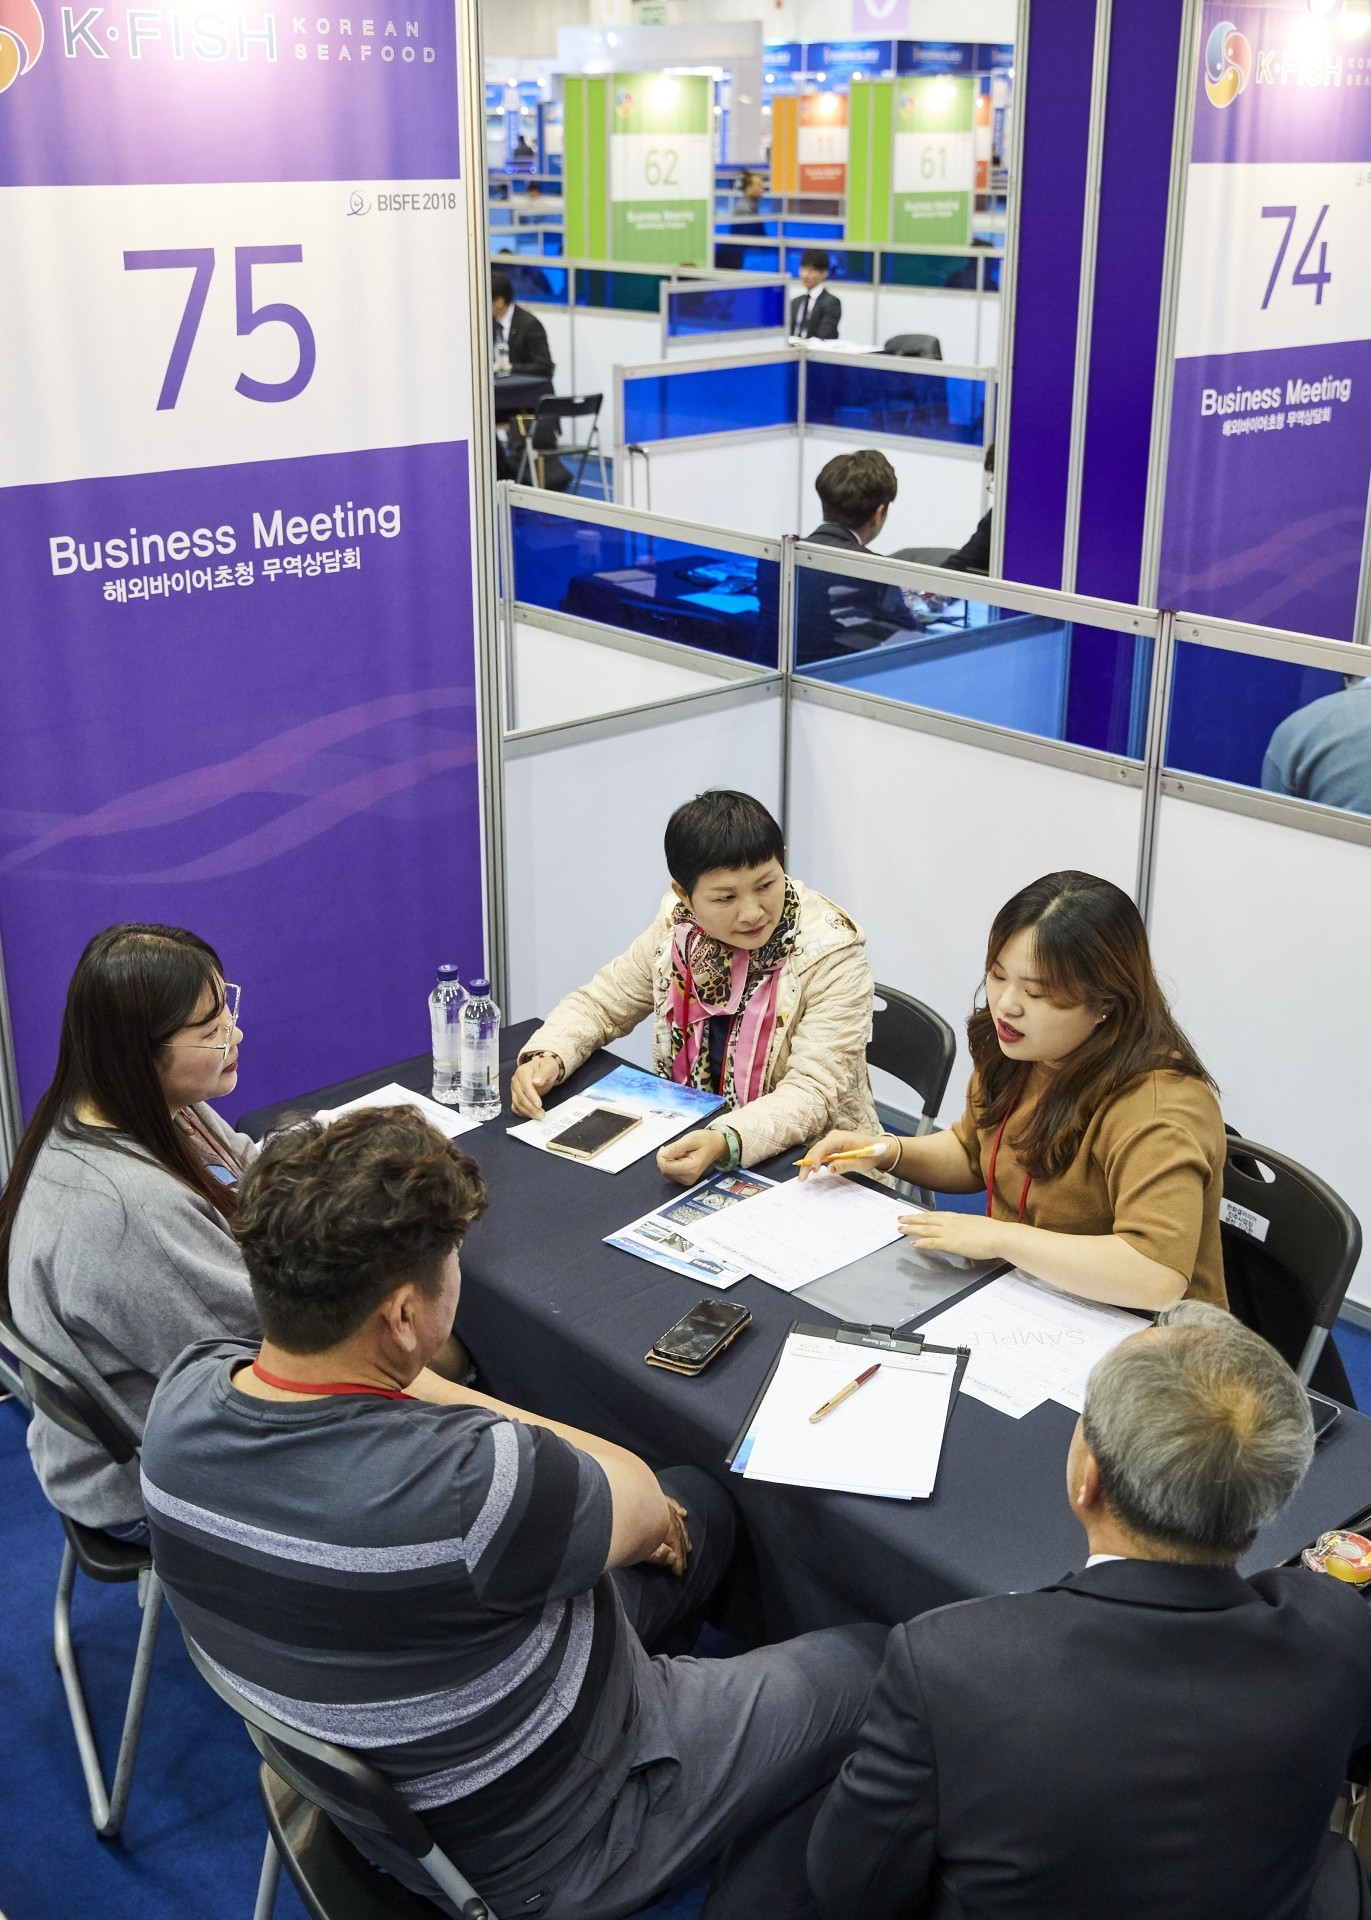 Various business events are organised for visitors and participants.